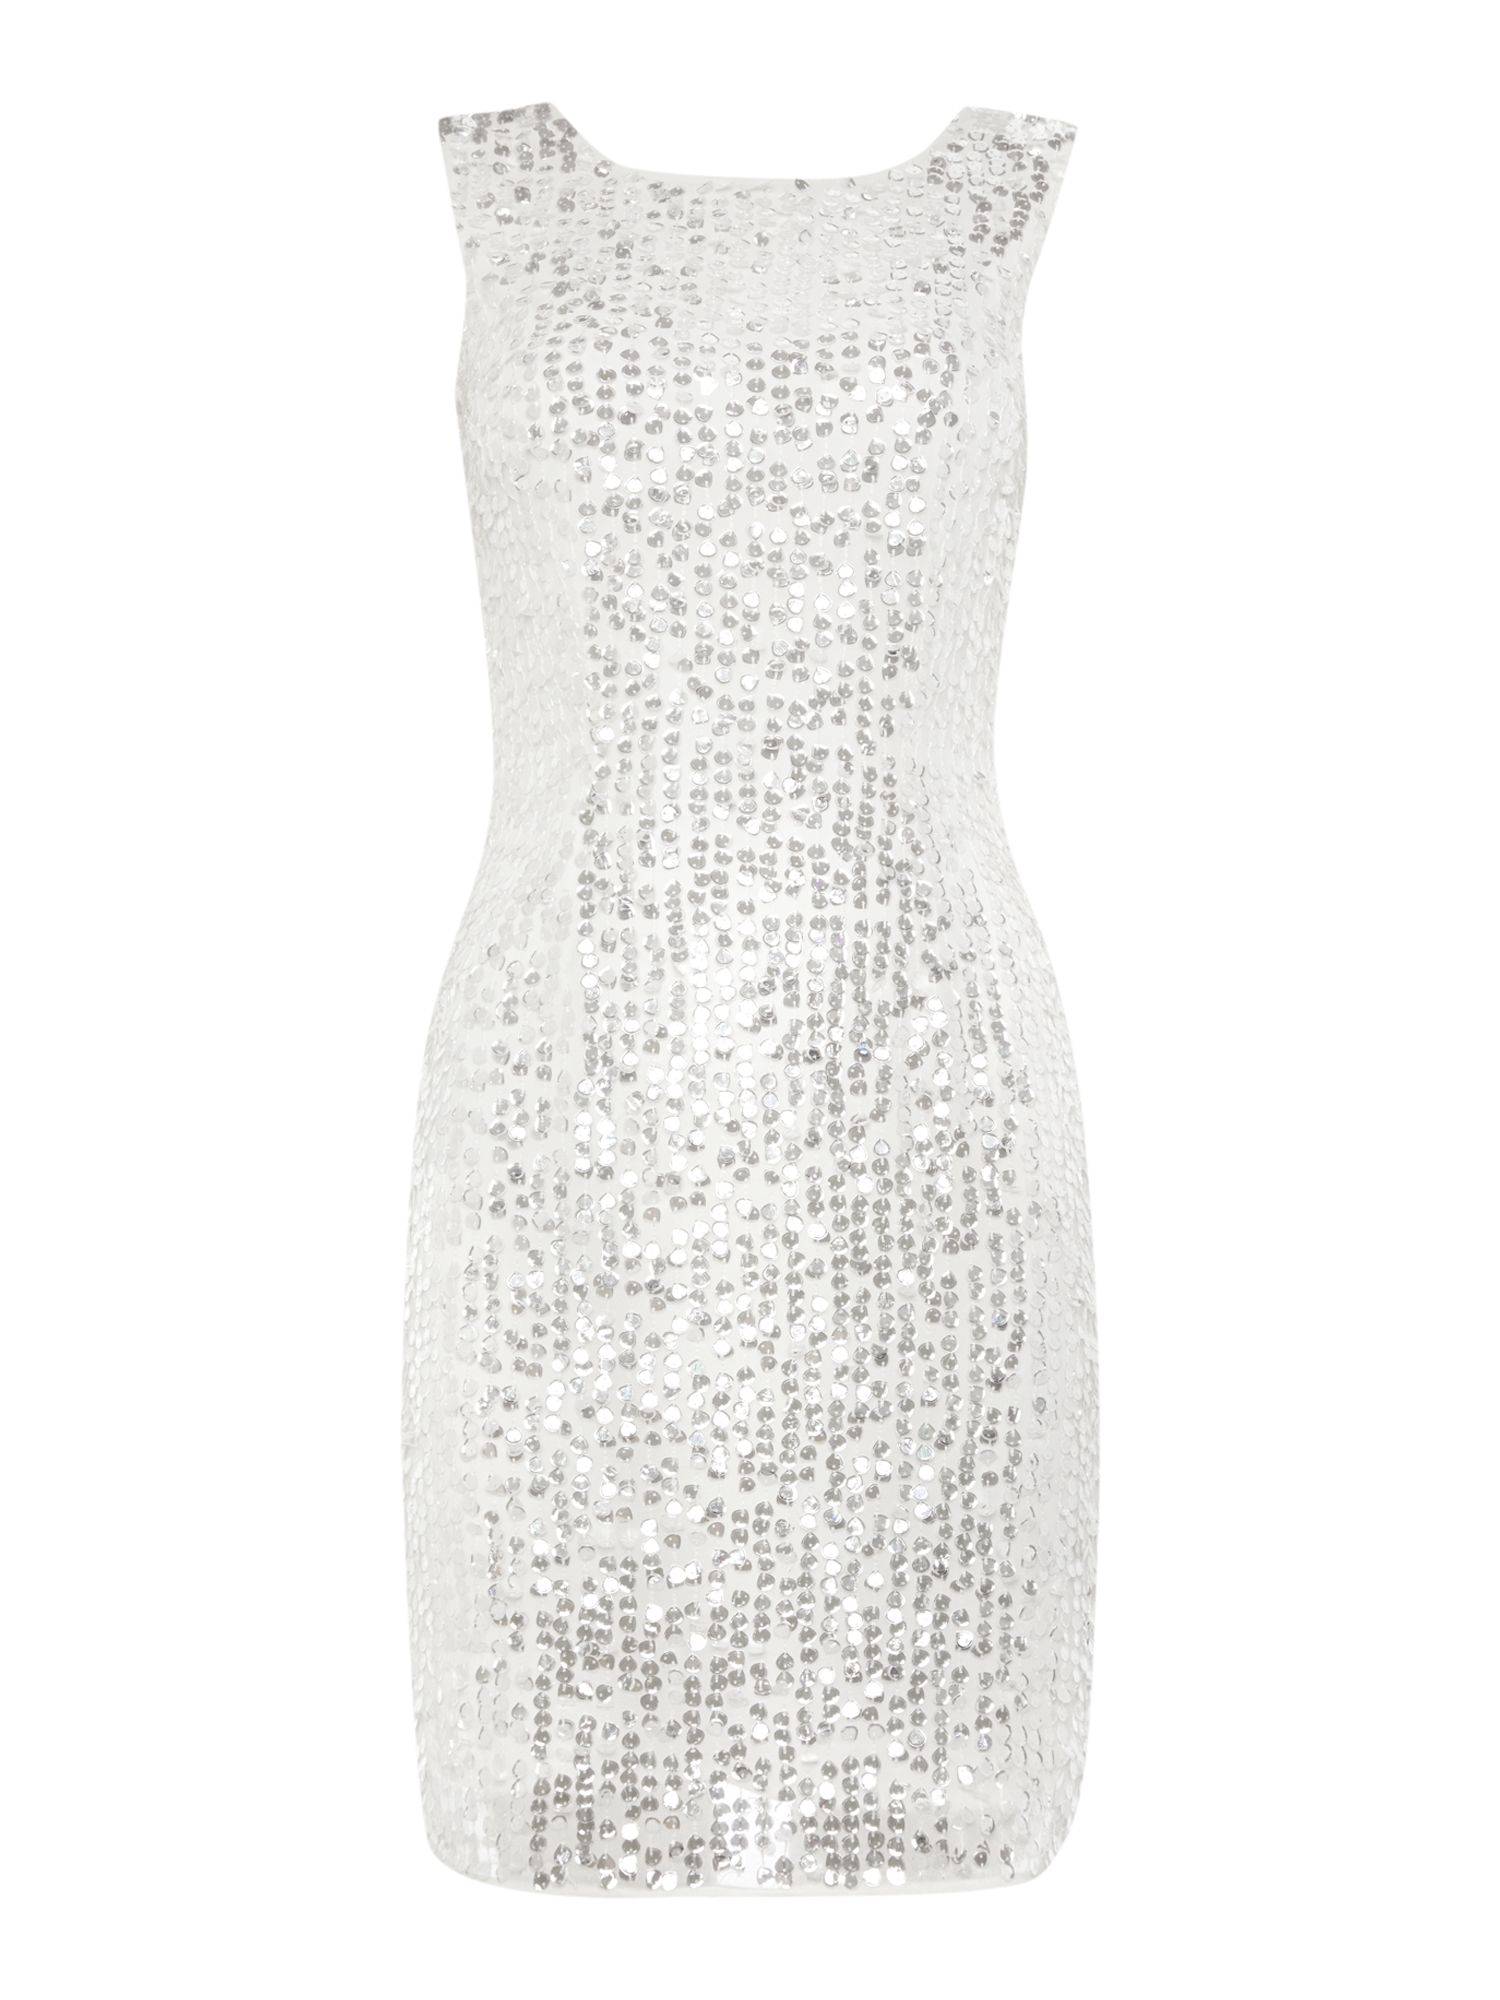 Lace and Beads Sleeveless Full Beaded Bodycon Dress White £59.50 AT vintagedancer.com